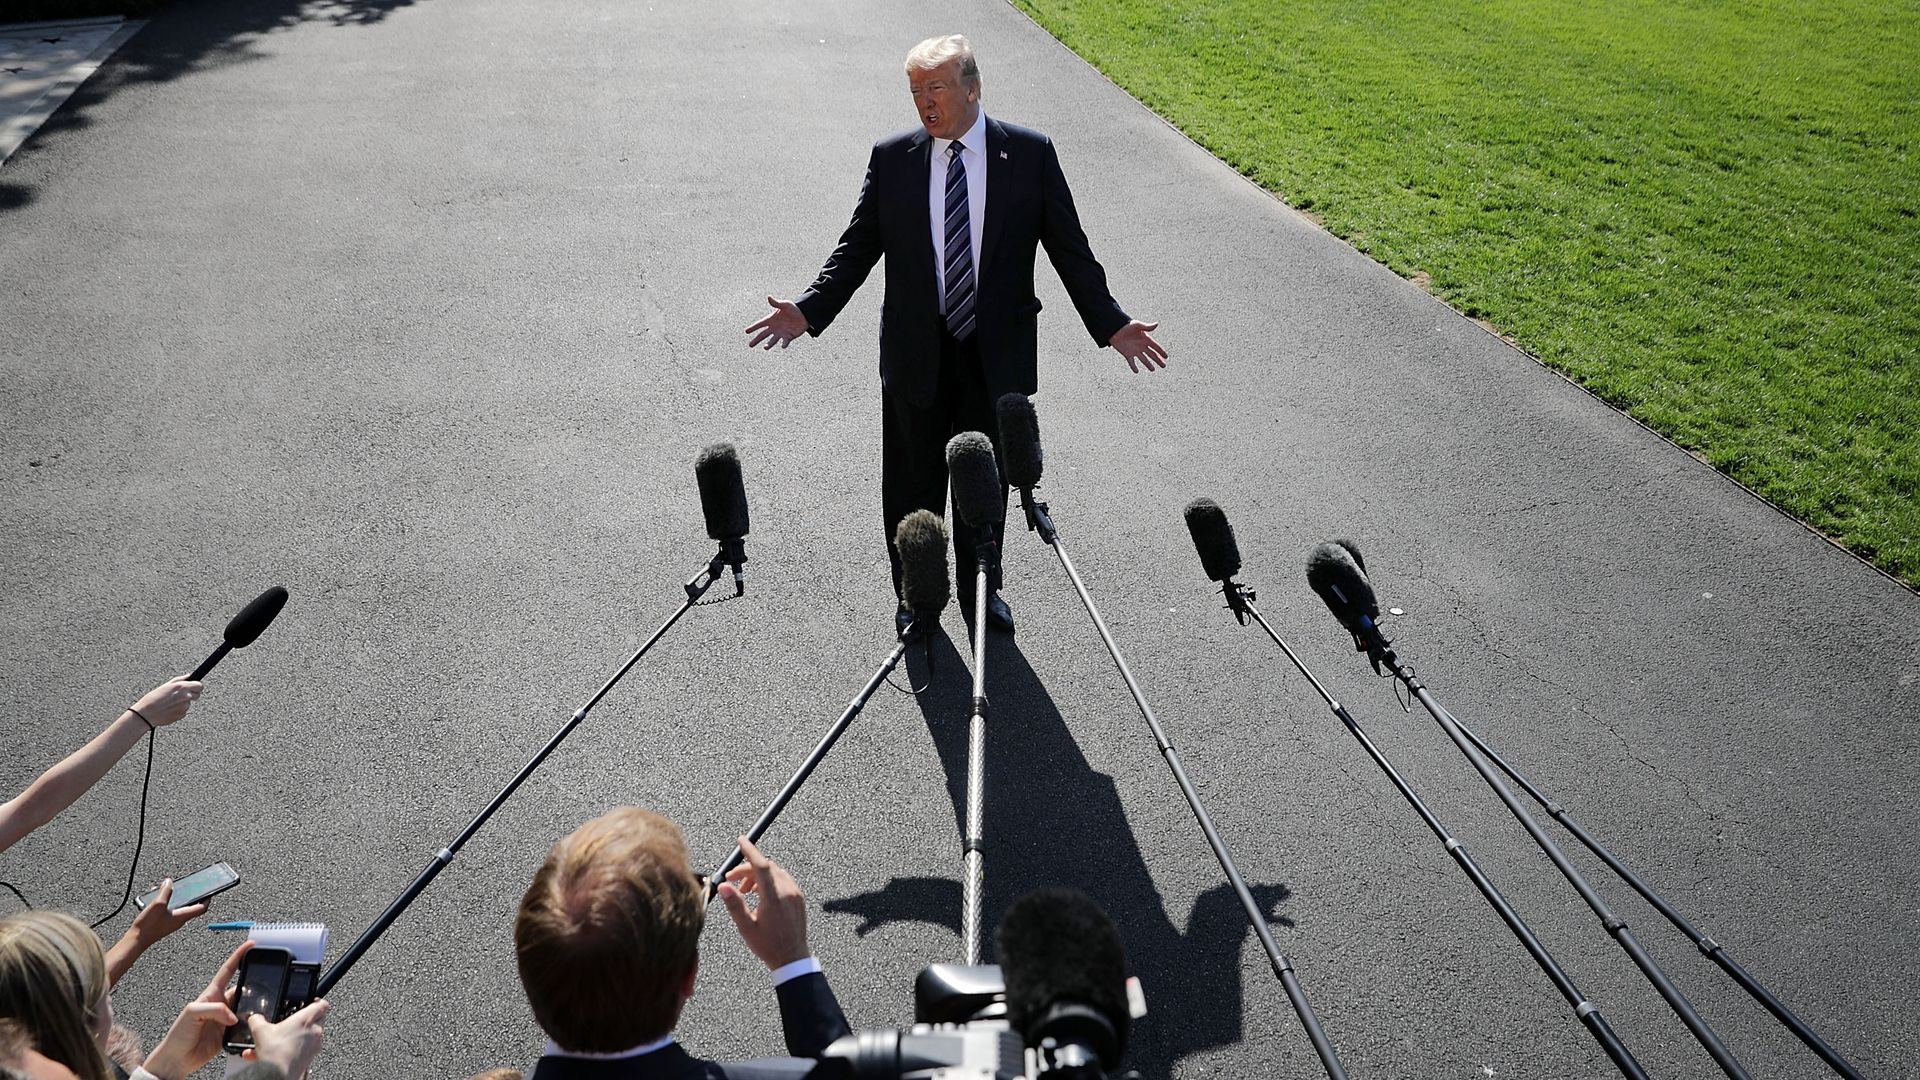 Donald Trump standing on asphalt surrounded by microphones.